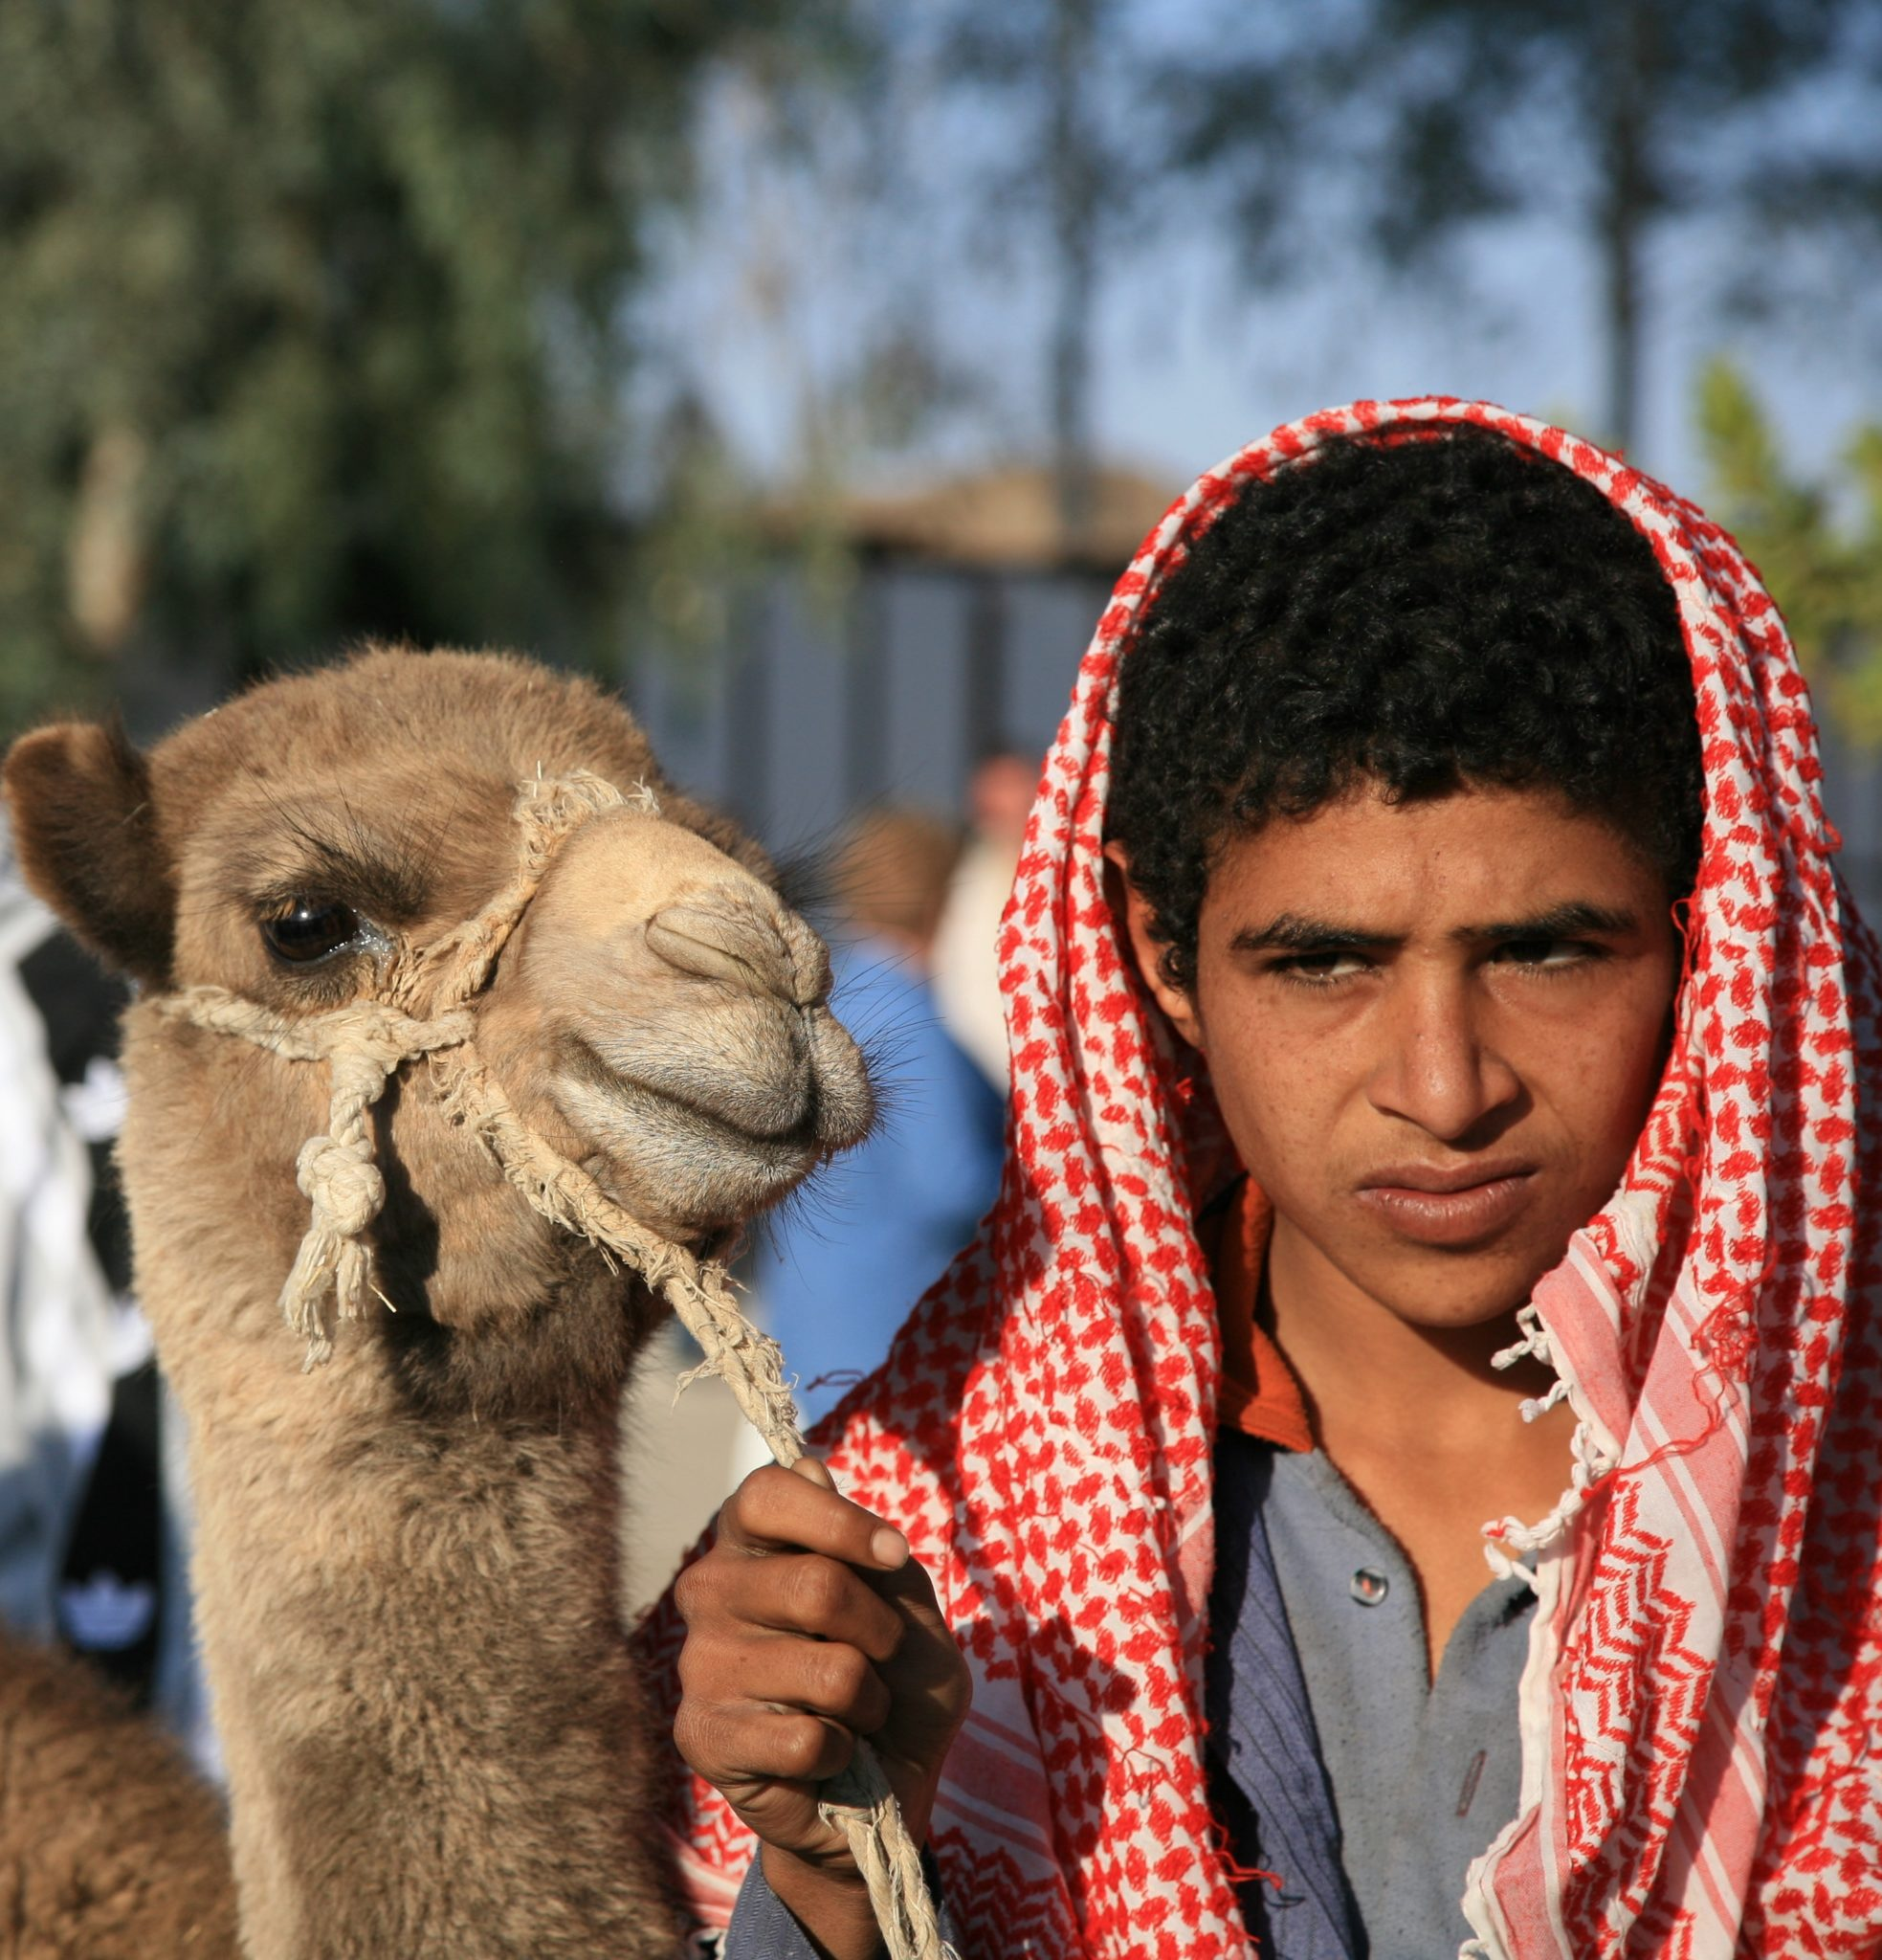 Bedouin with Camel - Ricardo Liberato, Creative Commons